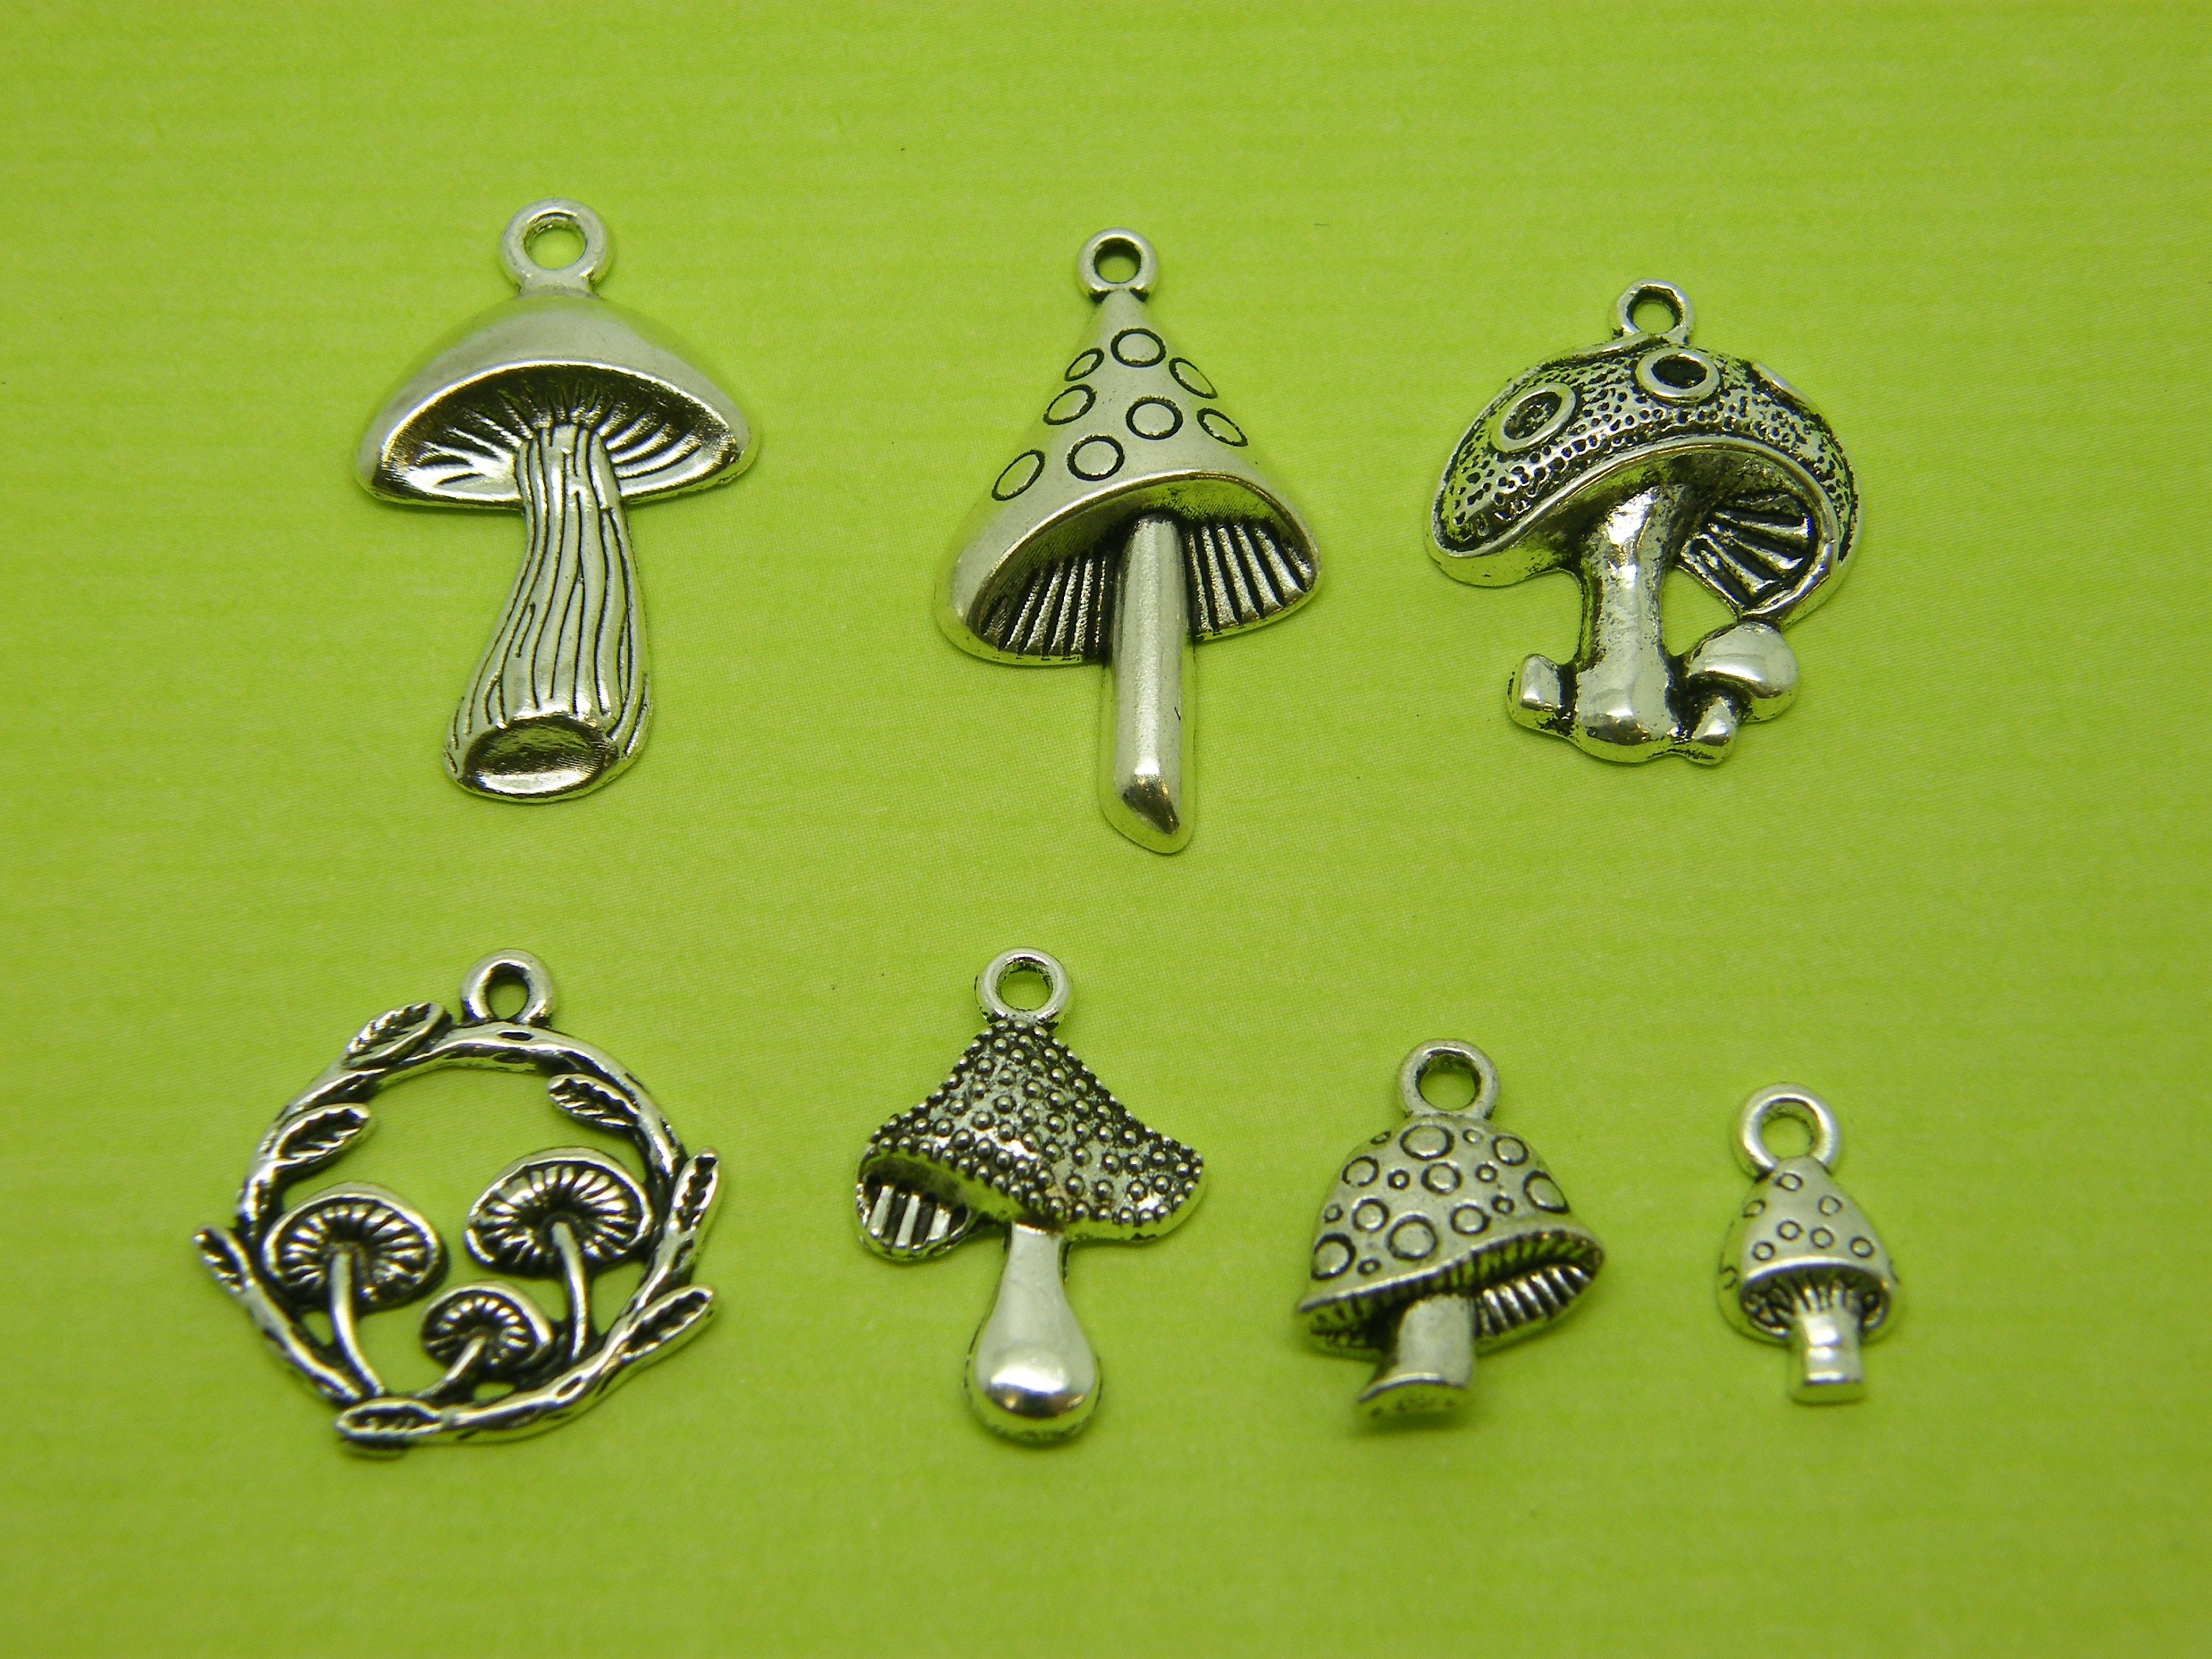 The Mushroom Collection - 7 different antique silver tone charms